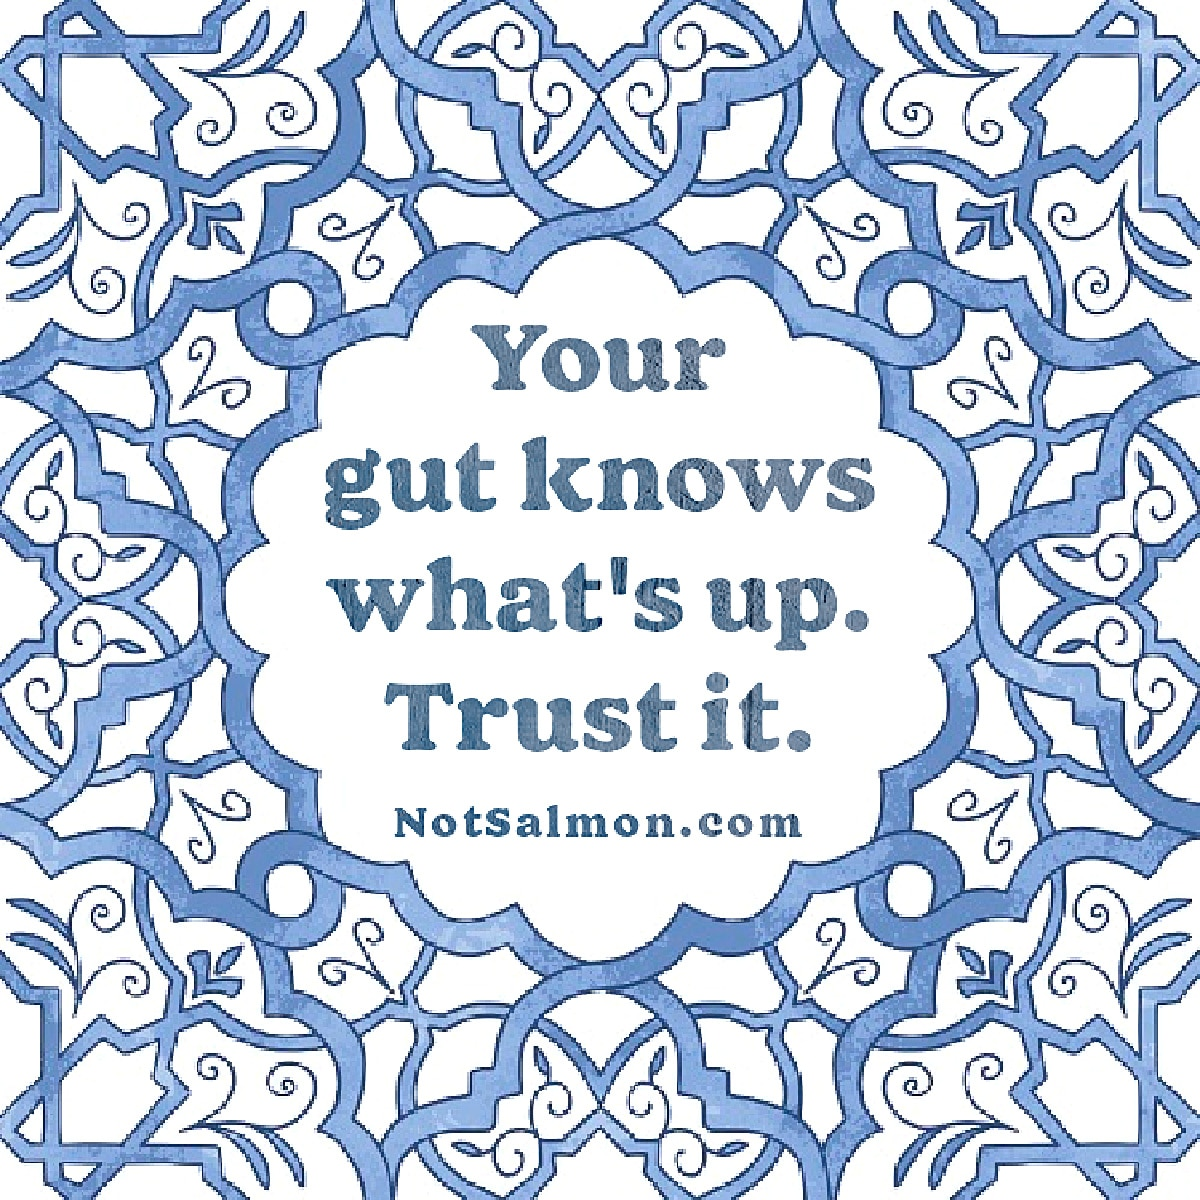 quote your gut knows what's up trust it